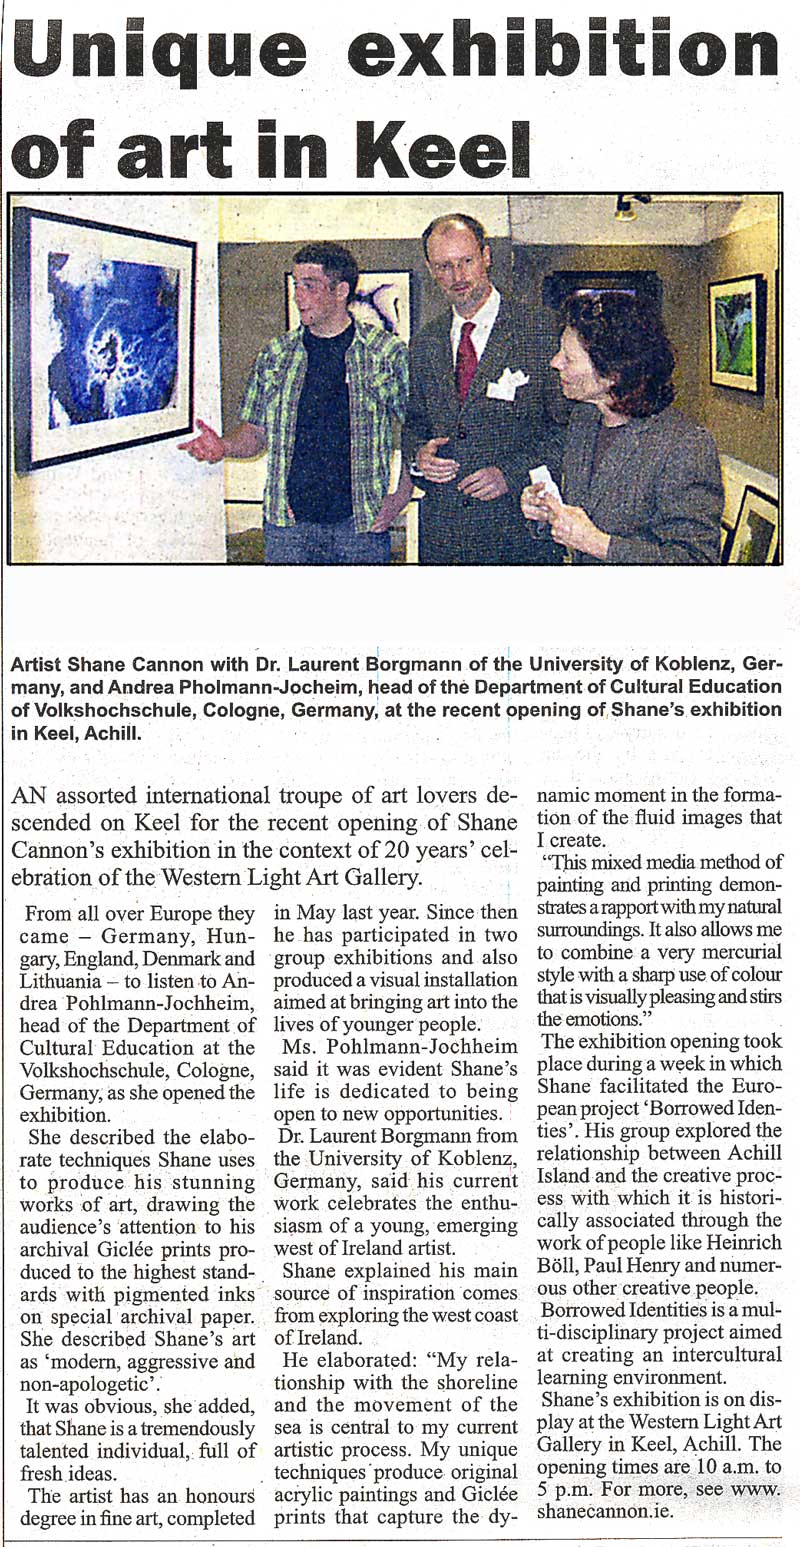 Newspaper report on Shane Cannon's exhibition opening at The Western Light Art Gallery on Achill Island.